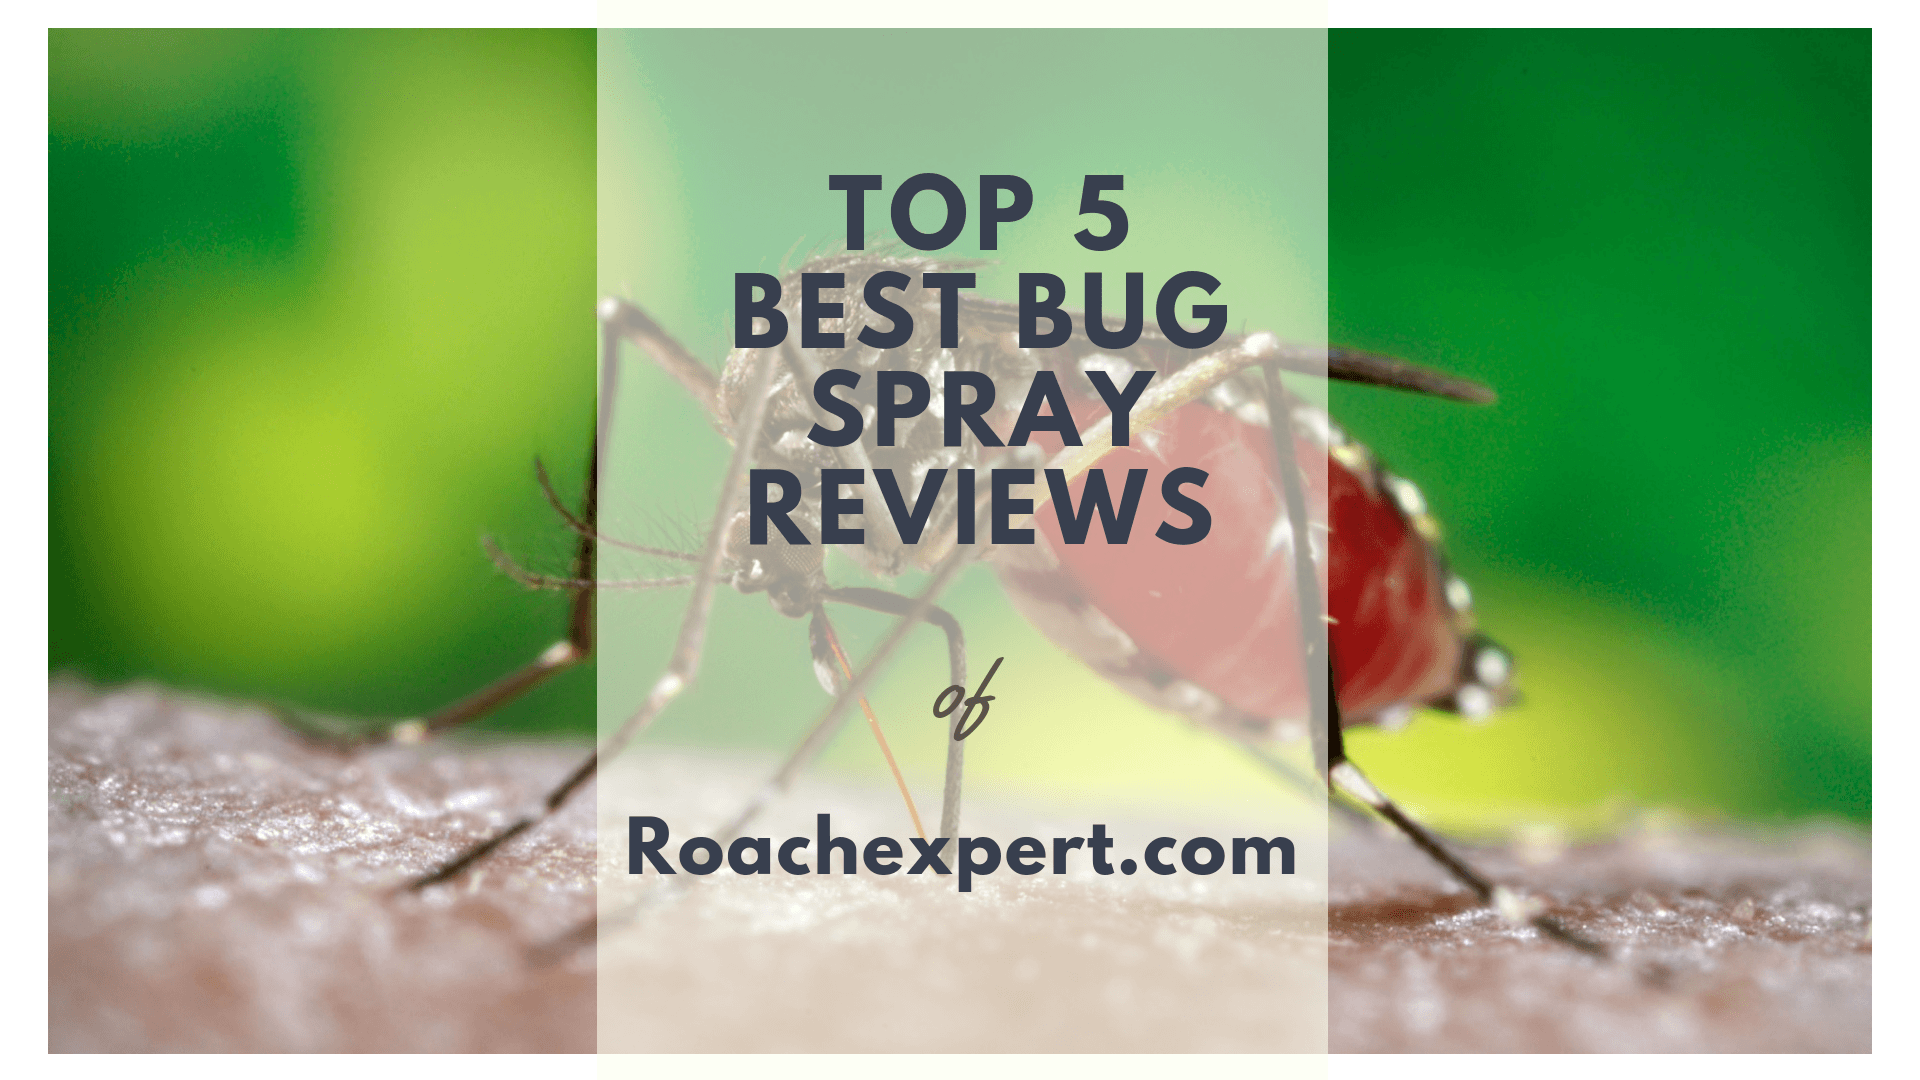 Top 5 Best Bug Spray Treatments Reviews for Indoor and Outdoor Home Pest Control